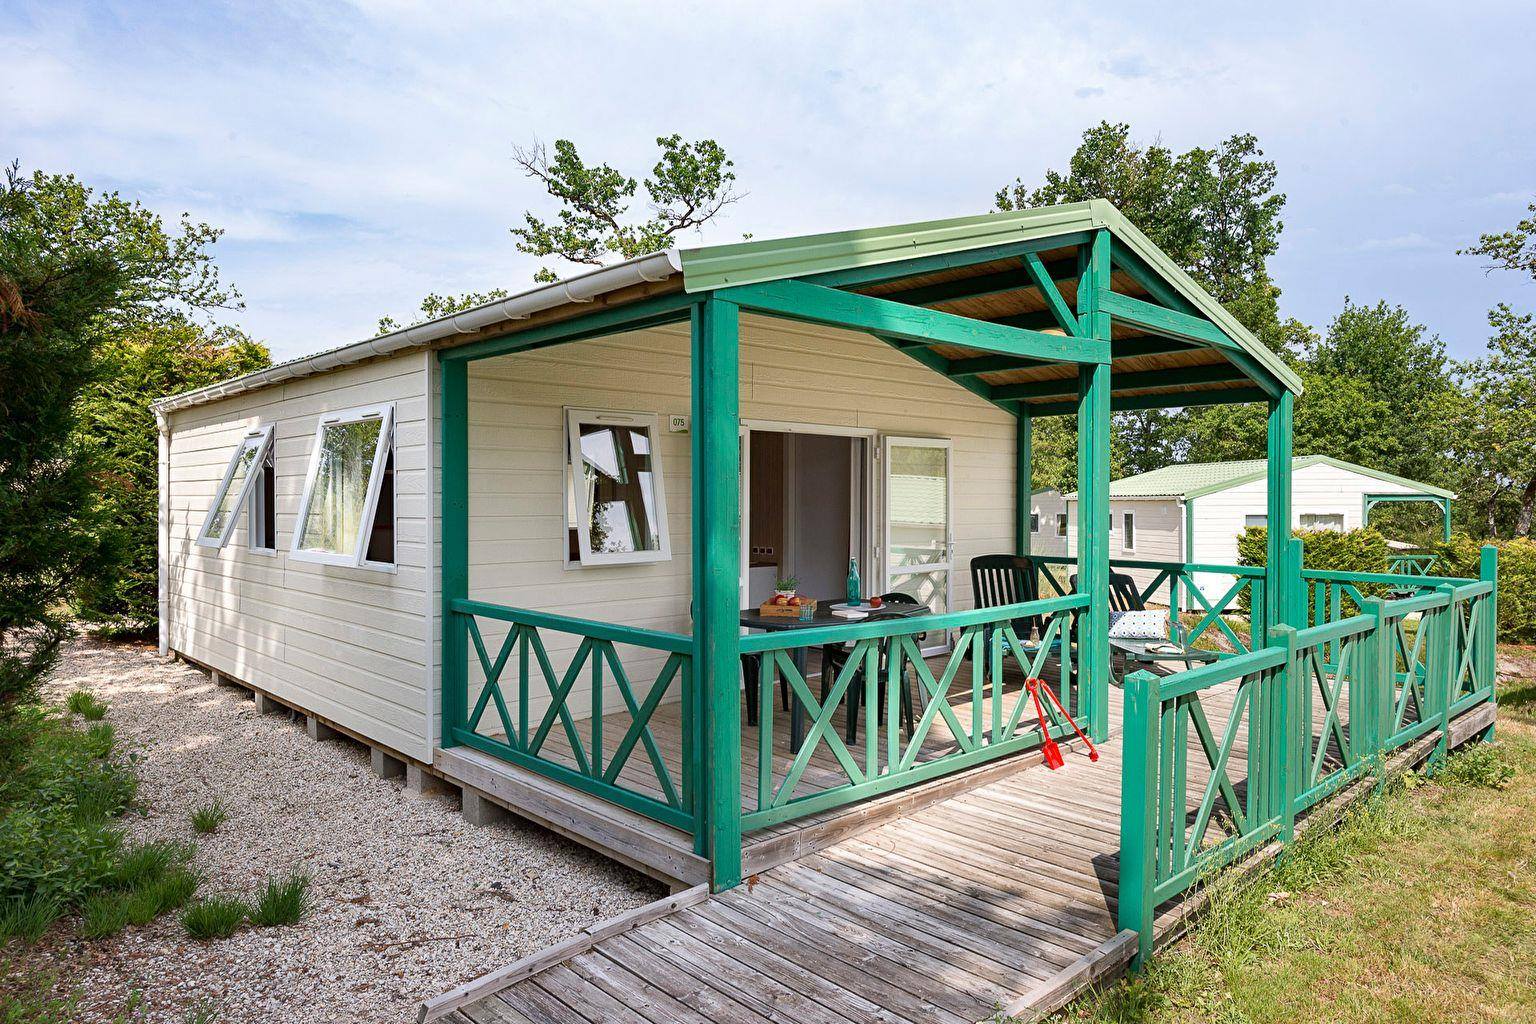 Location - Chalet 2 Chambres Pmr - Camping Sandaya Les Alicourts Resort